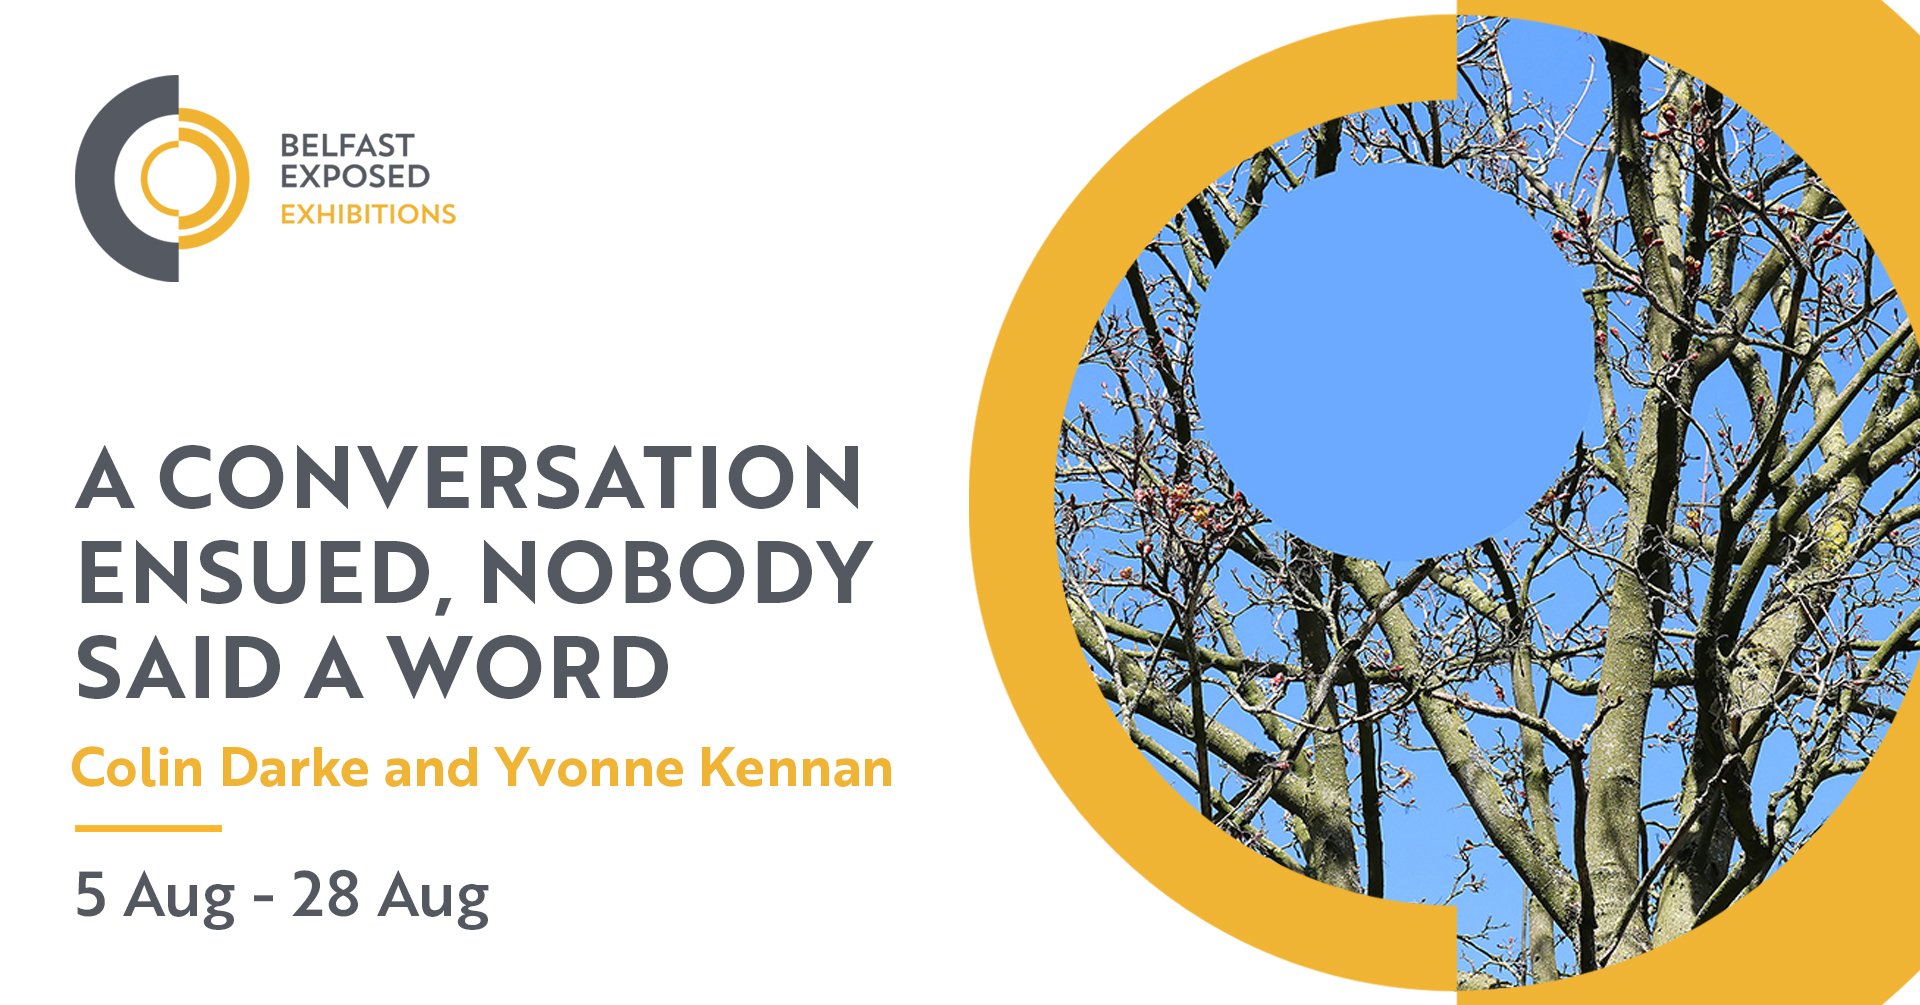 A Conversation Ensued, Nobody Said A Word | Colin Darke and Yvonne Kennan at Belfast Exposed